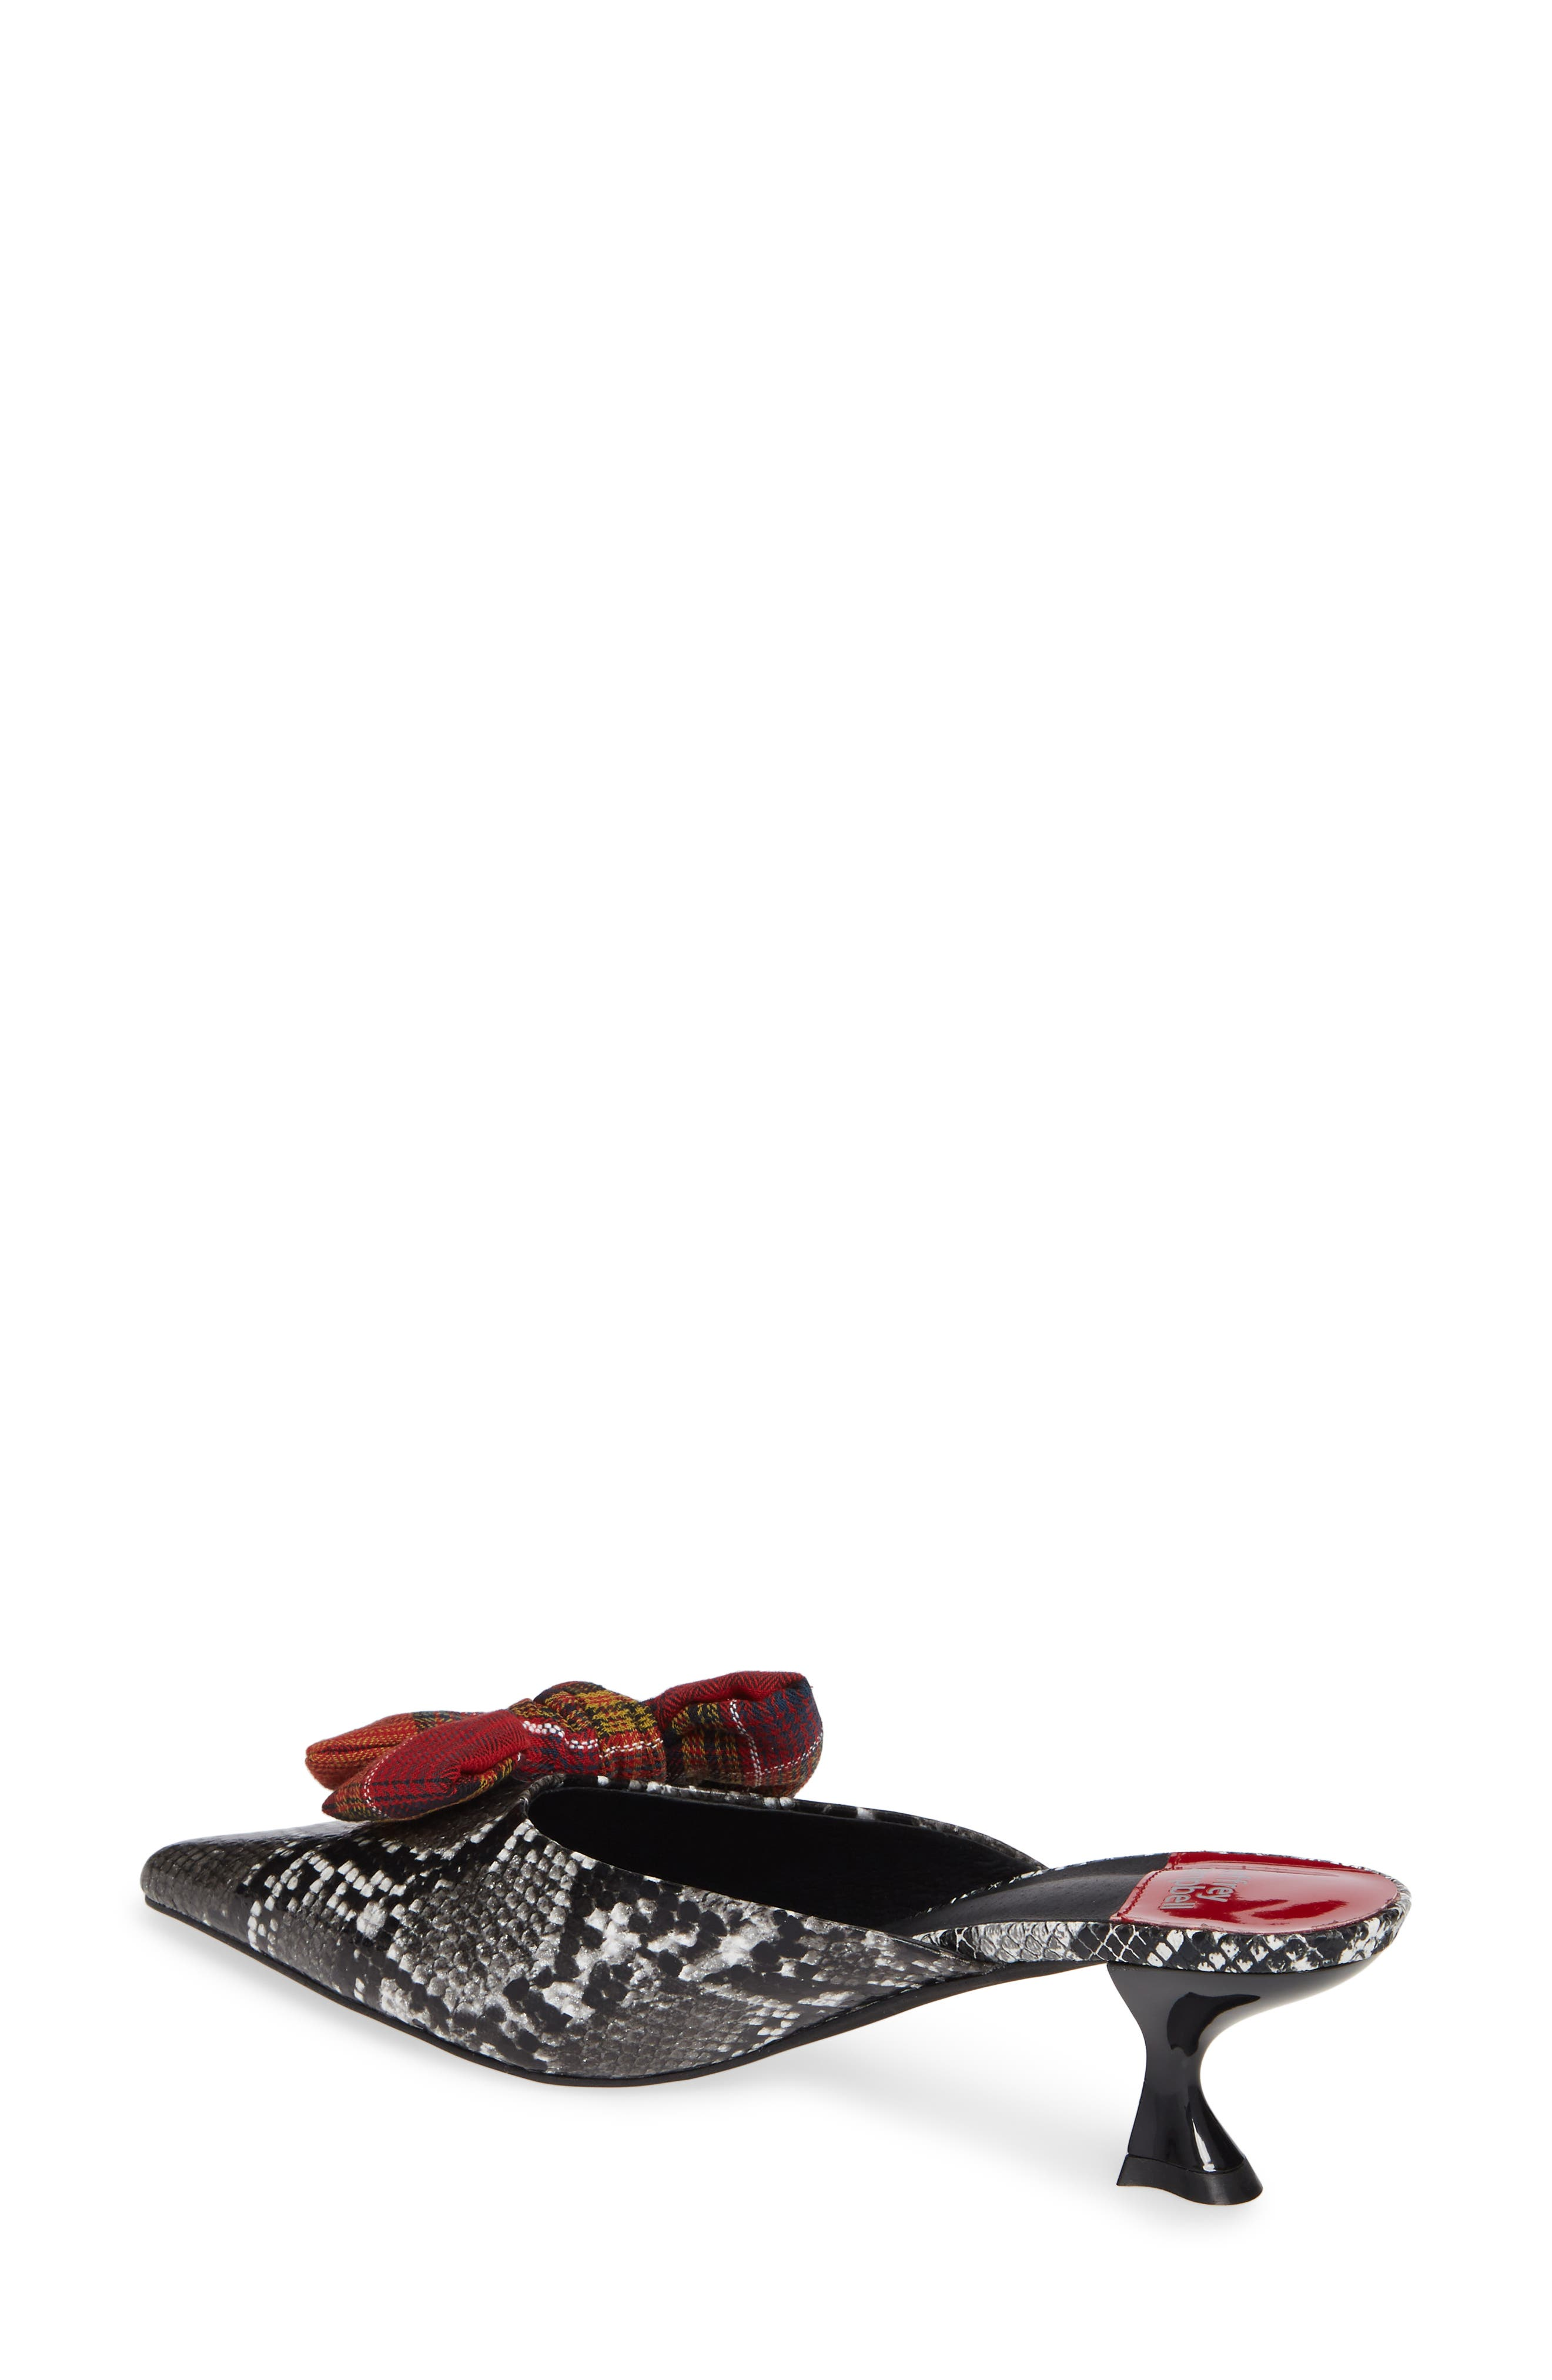 JEFFREY CAMPBELL, Adorn Pointy Toe Mule, Alternate thumbnail 2, color, GREY BLACK SNAKE / RED PLAID